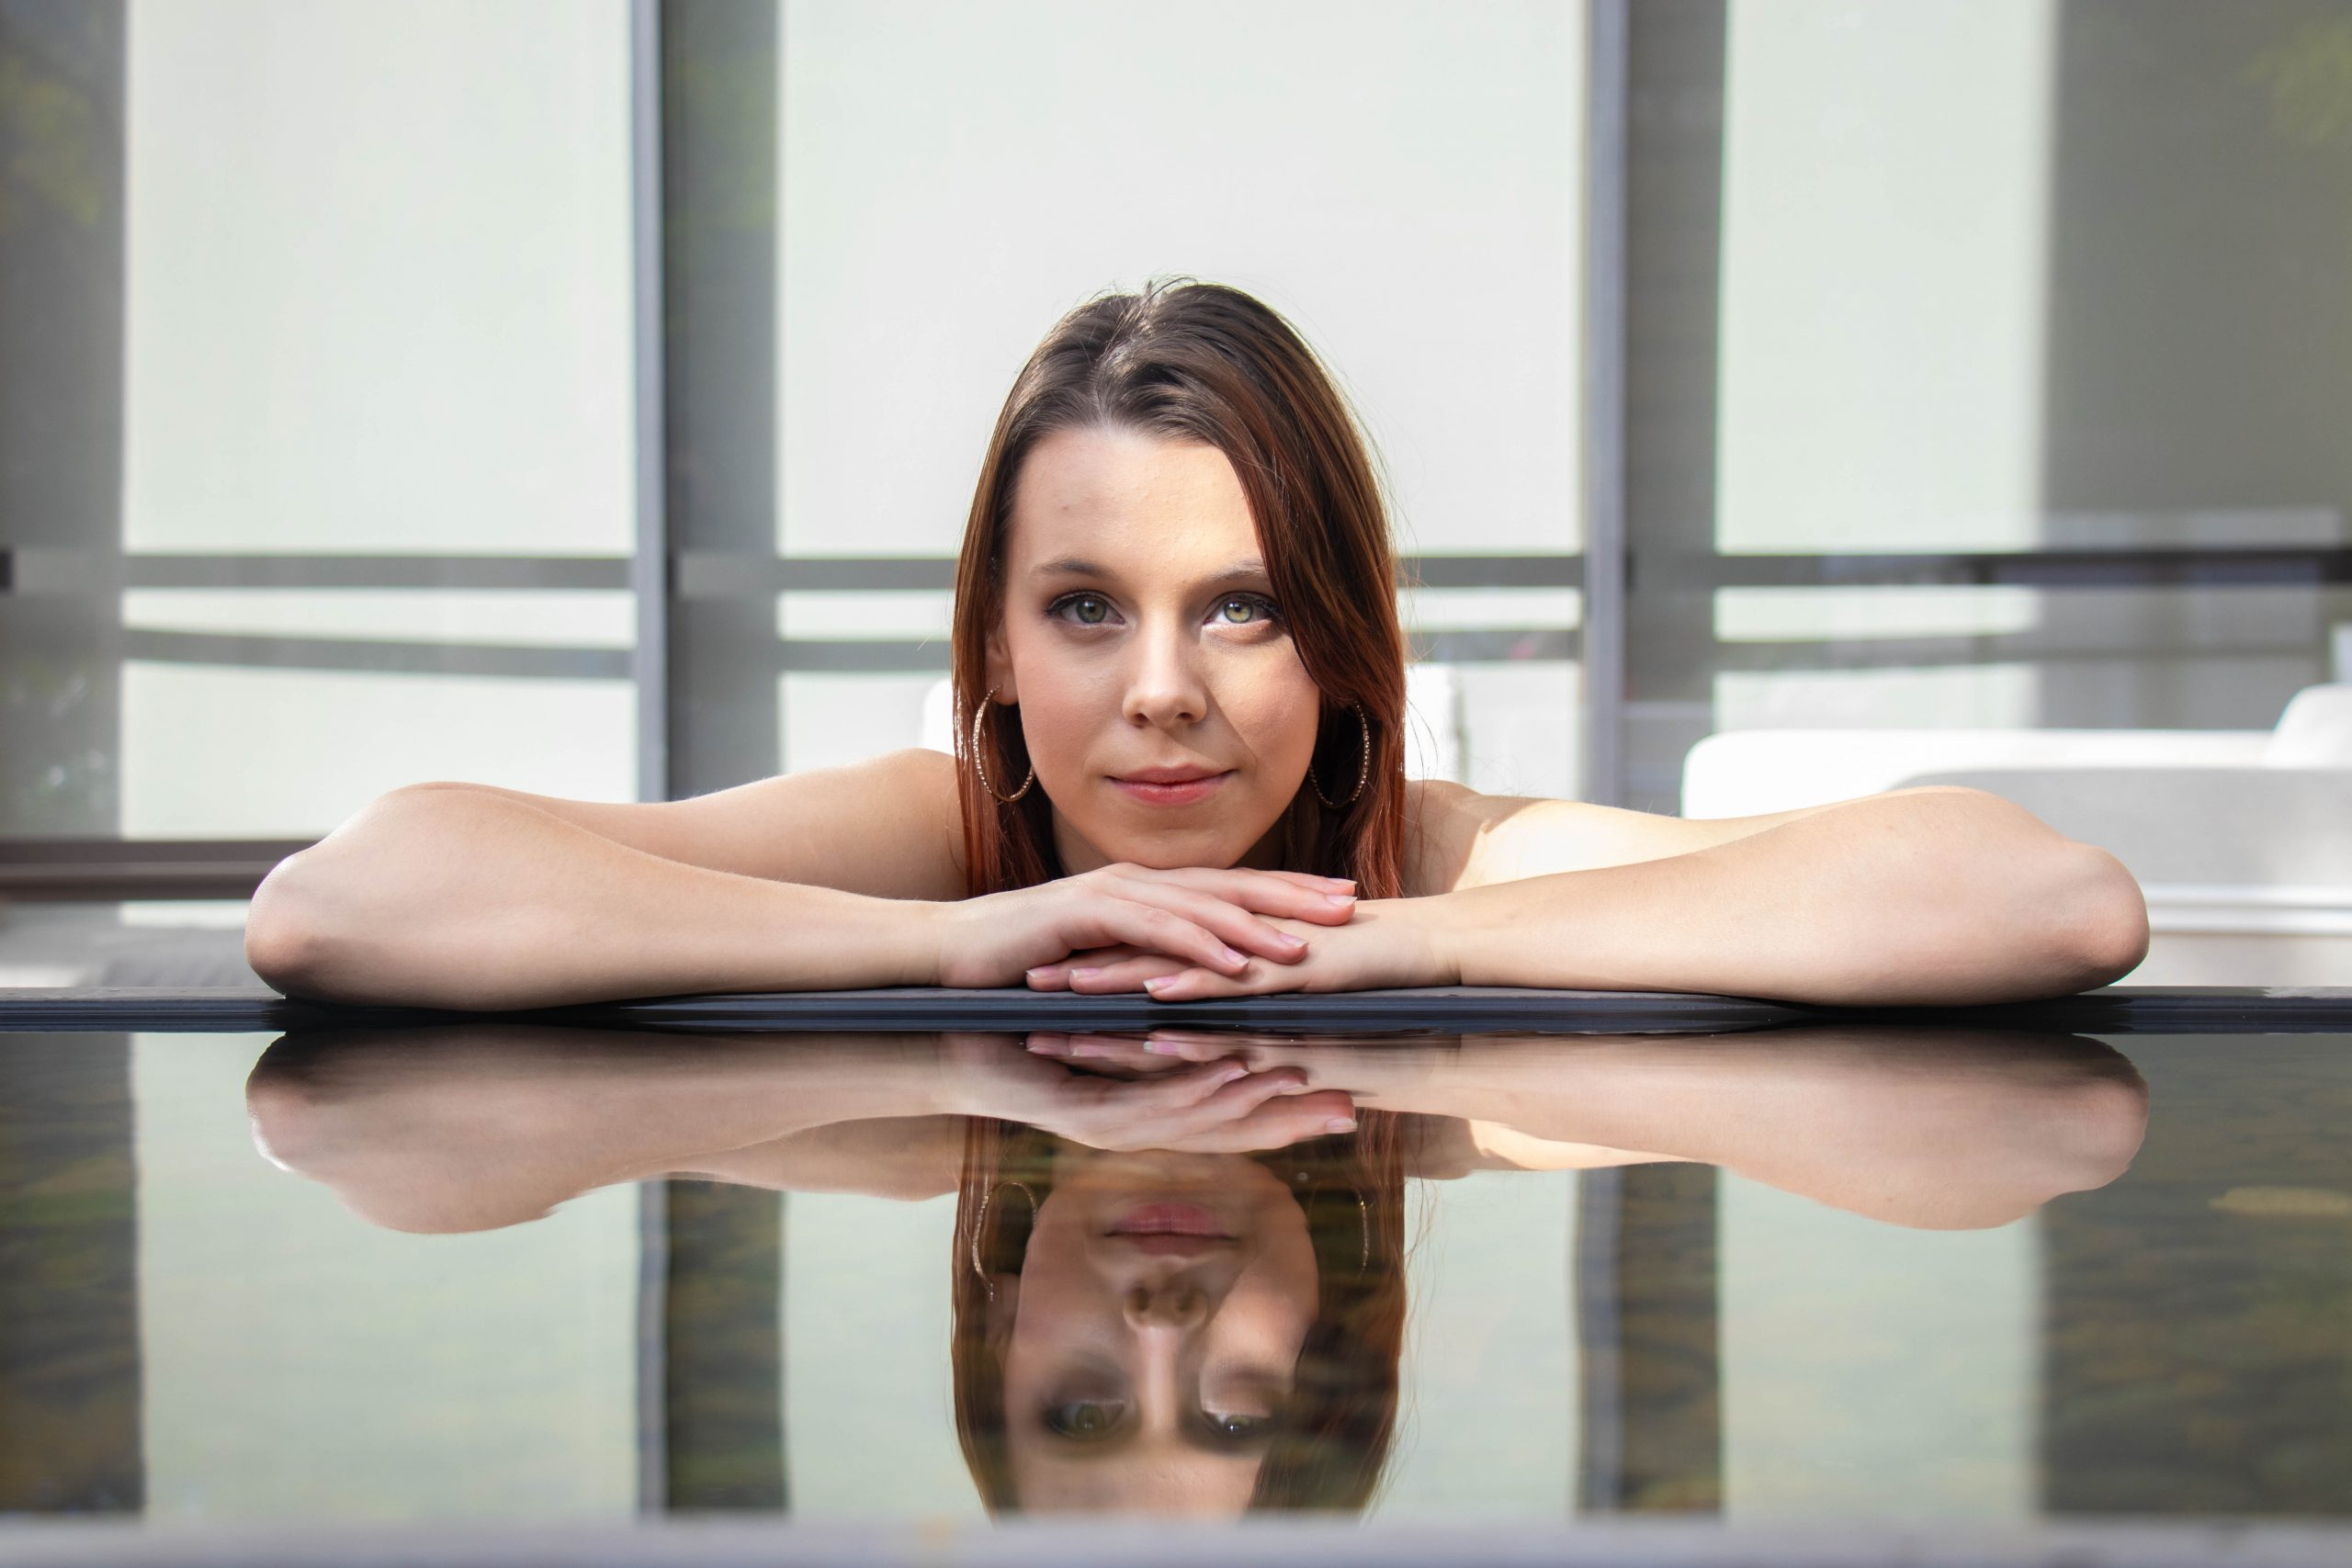 Girl deep in thought with reflective pool